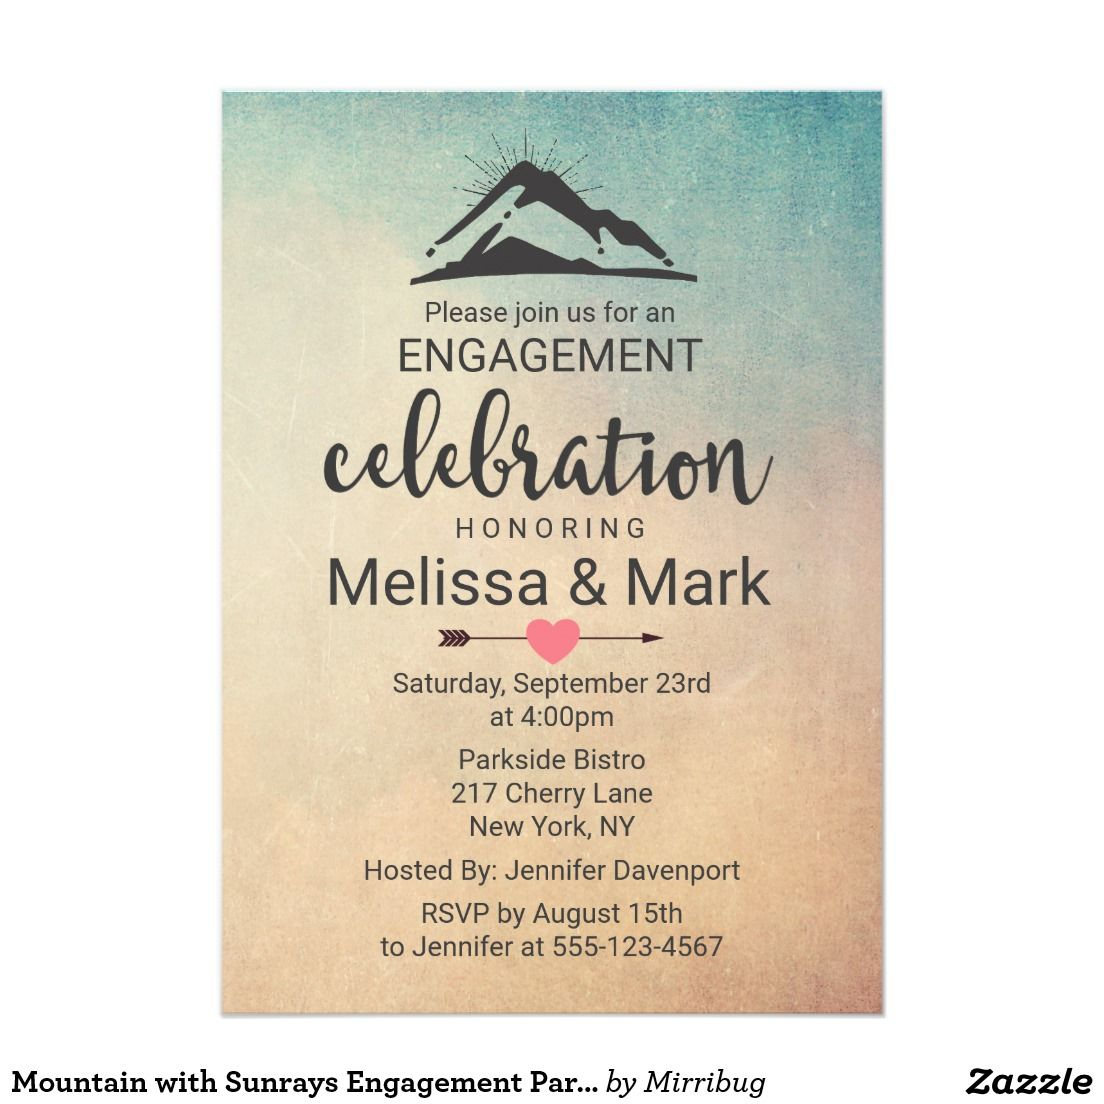 Mountain with Sunrays Engagement Party Invite   zazzle invitations ...